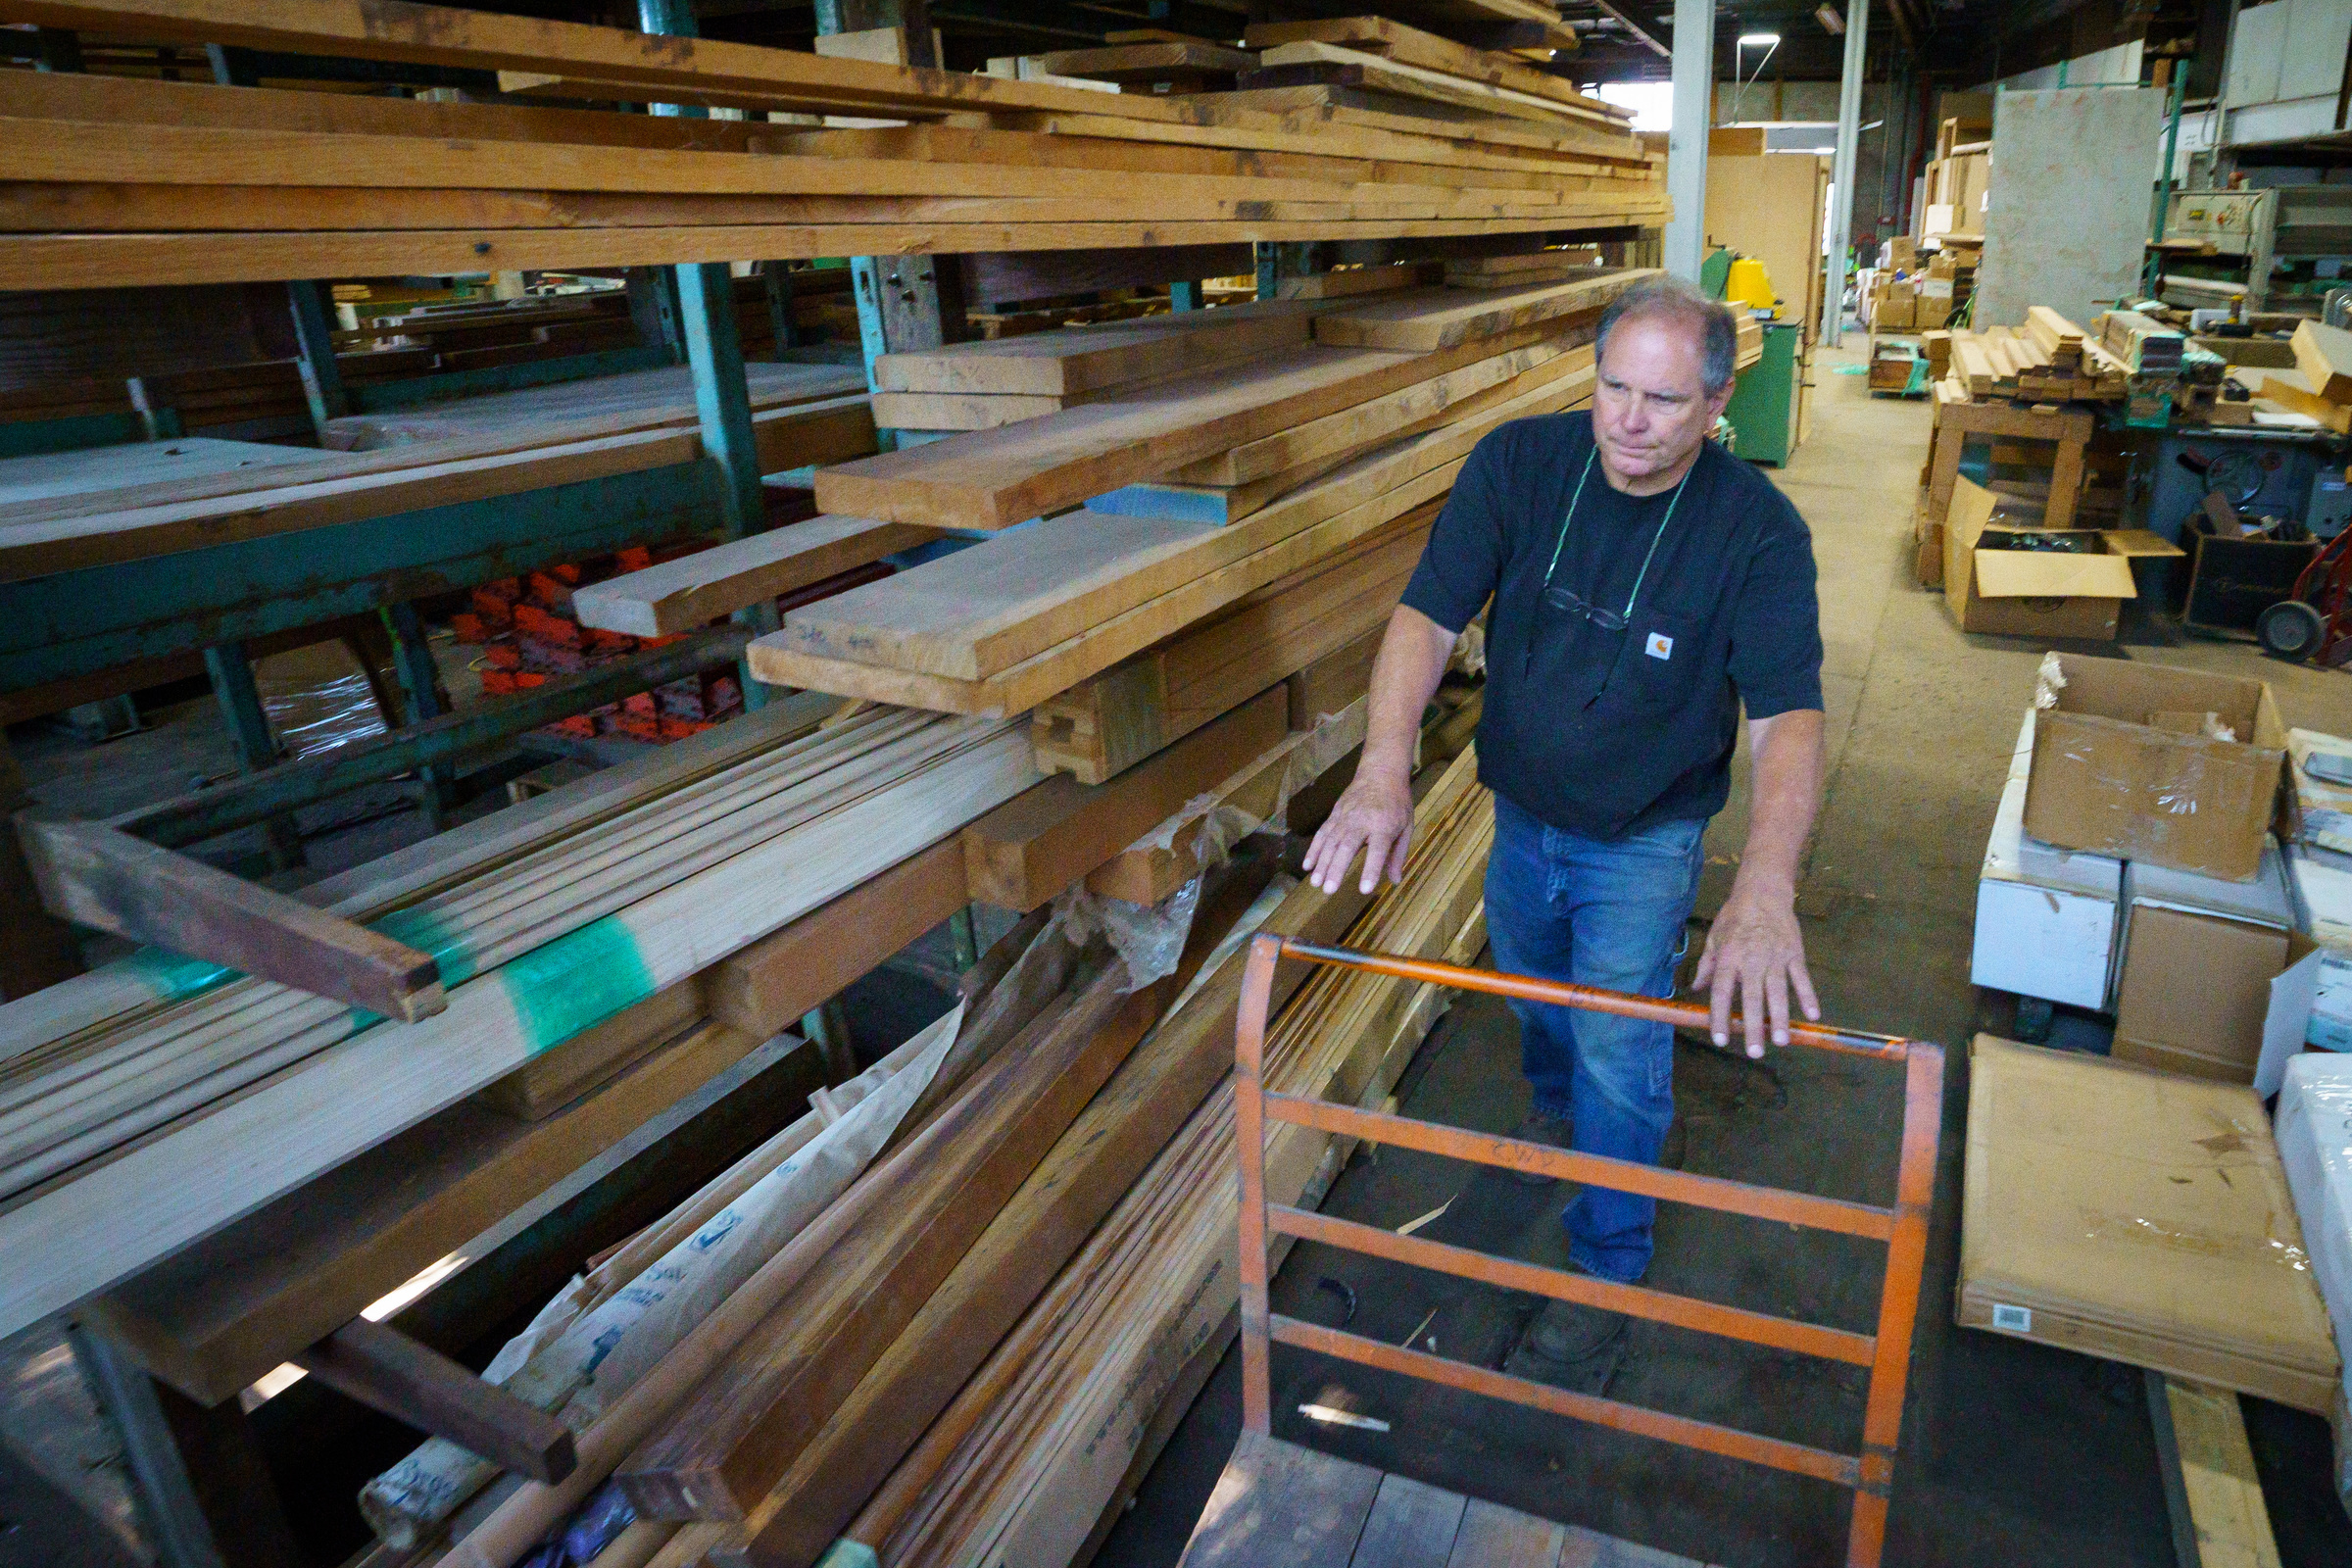 Victor Rossi, of Rossi Brother´s Cabinet makers, shown here at his new warehouse work space in Wissanoming.